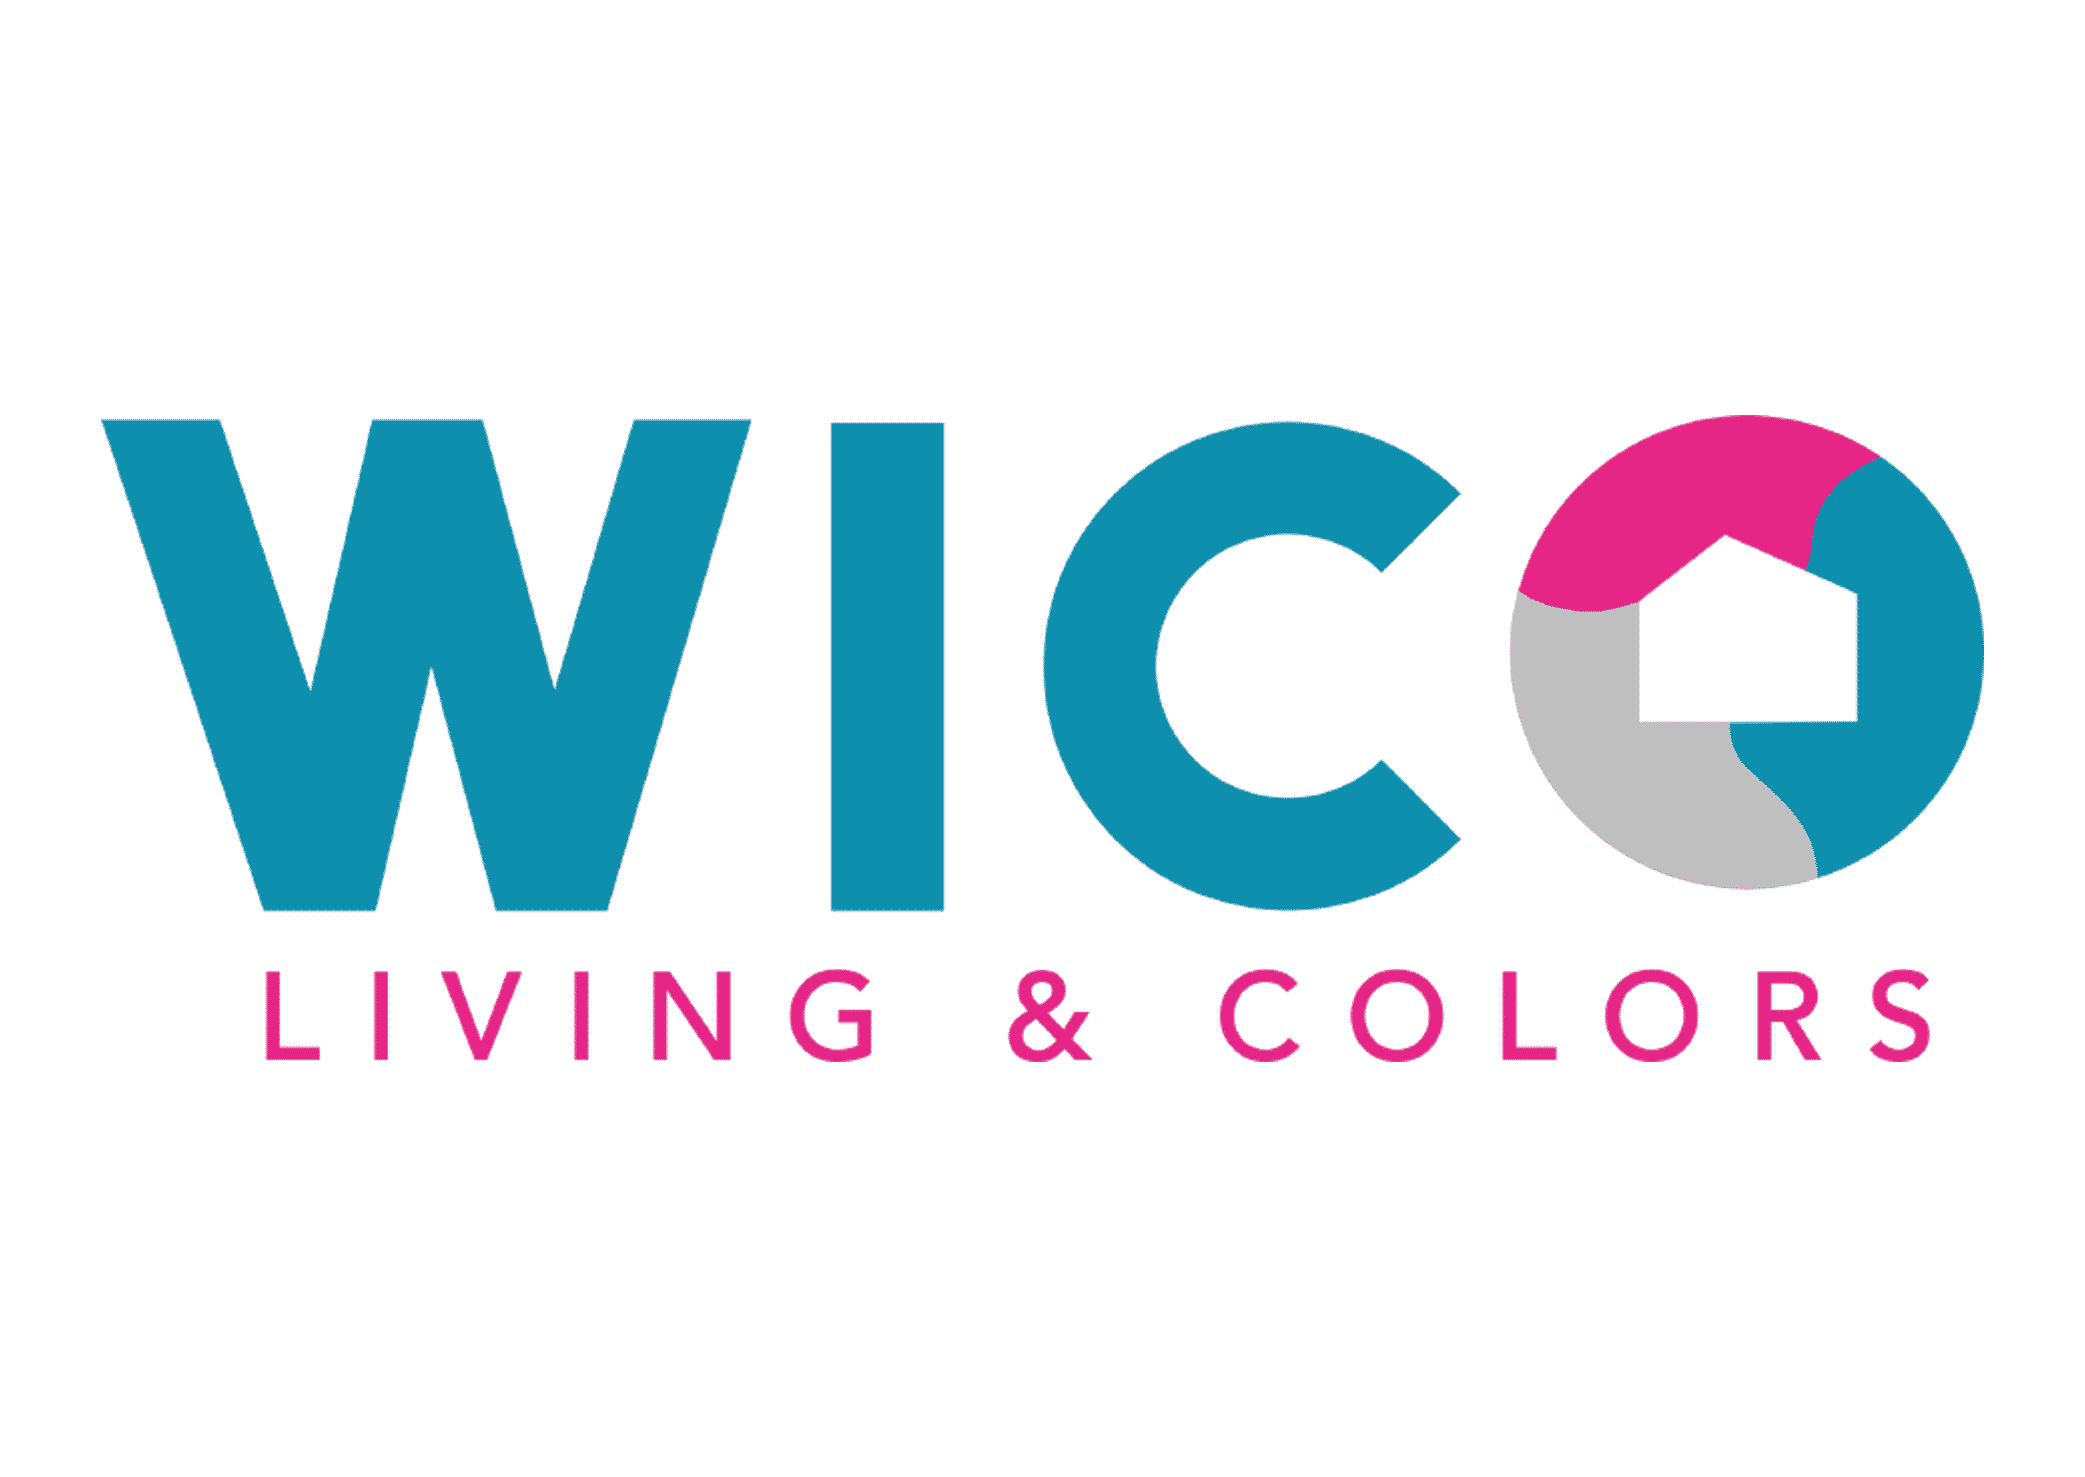 Wico Living Colors